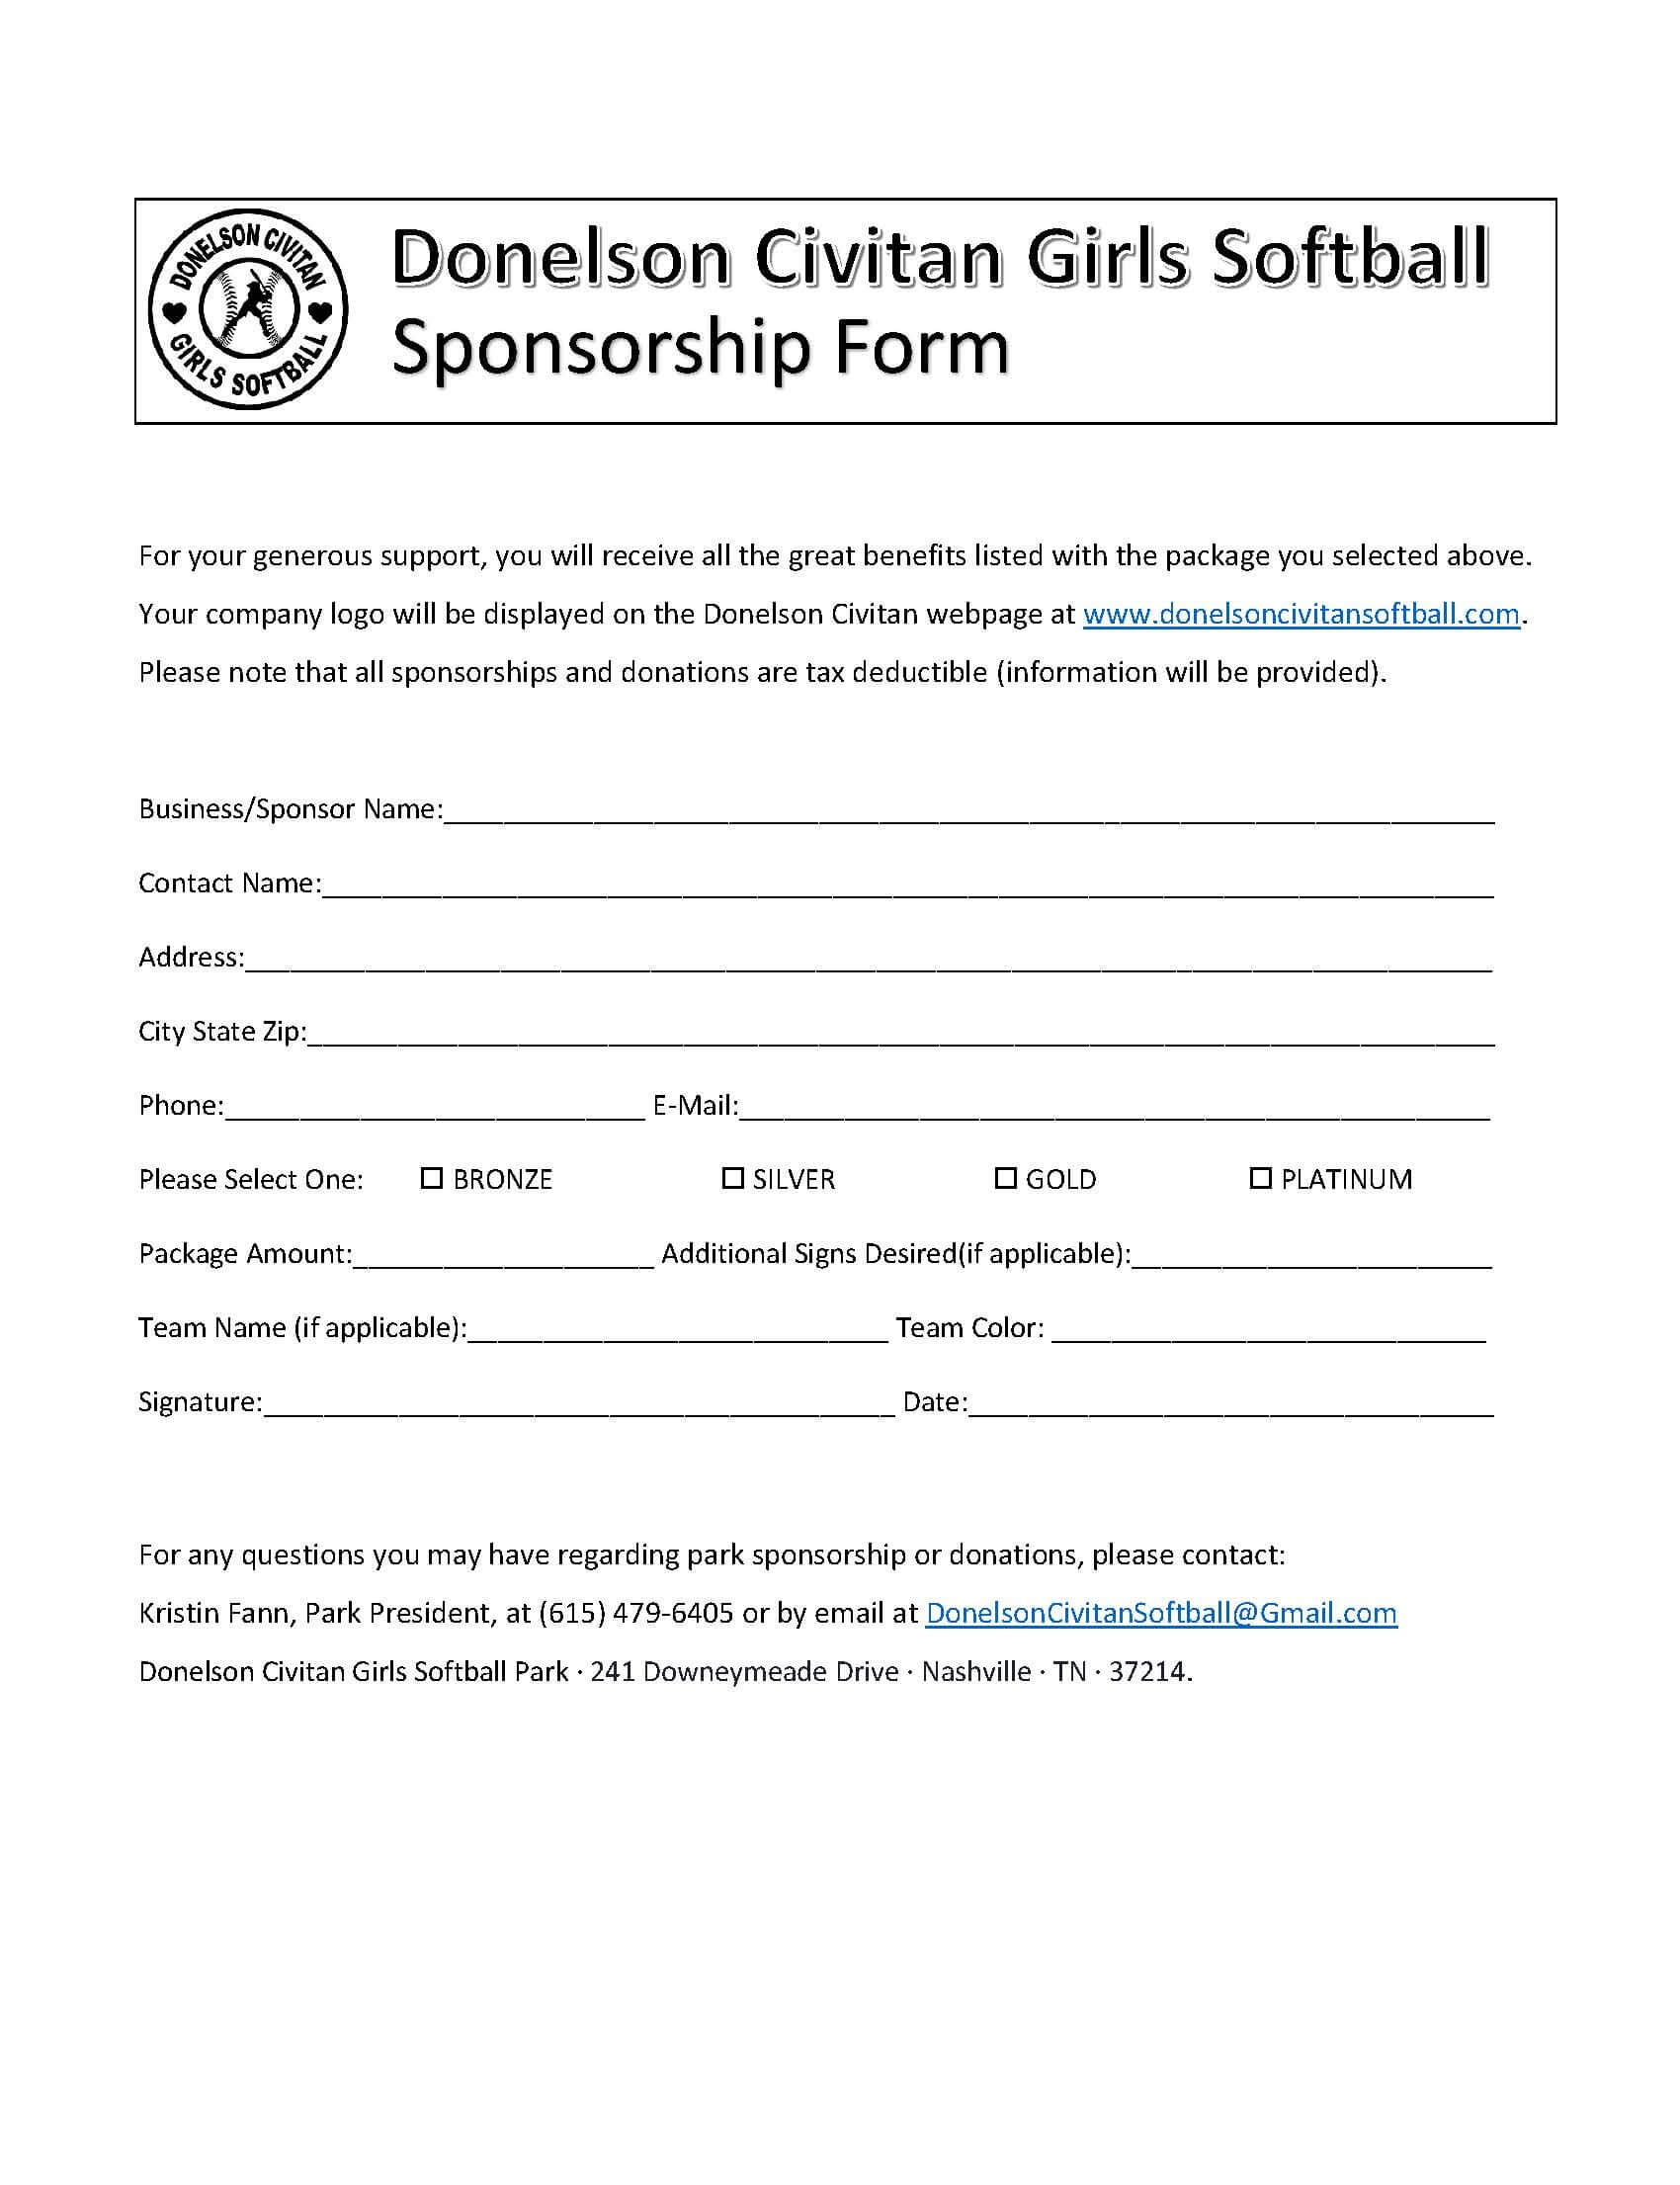 Sponsor Forms Templates Free ] – Template Sponsorship Form Inside Blank Sponsor Form Template Free